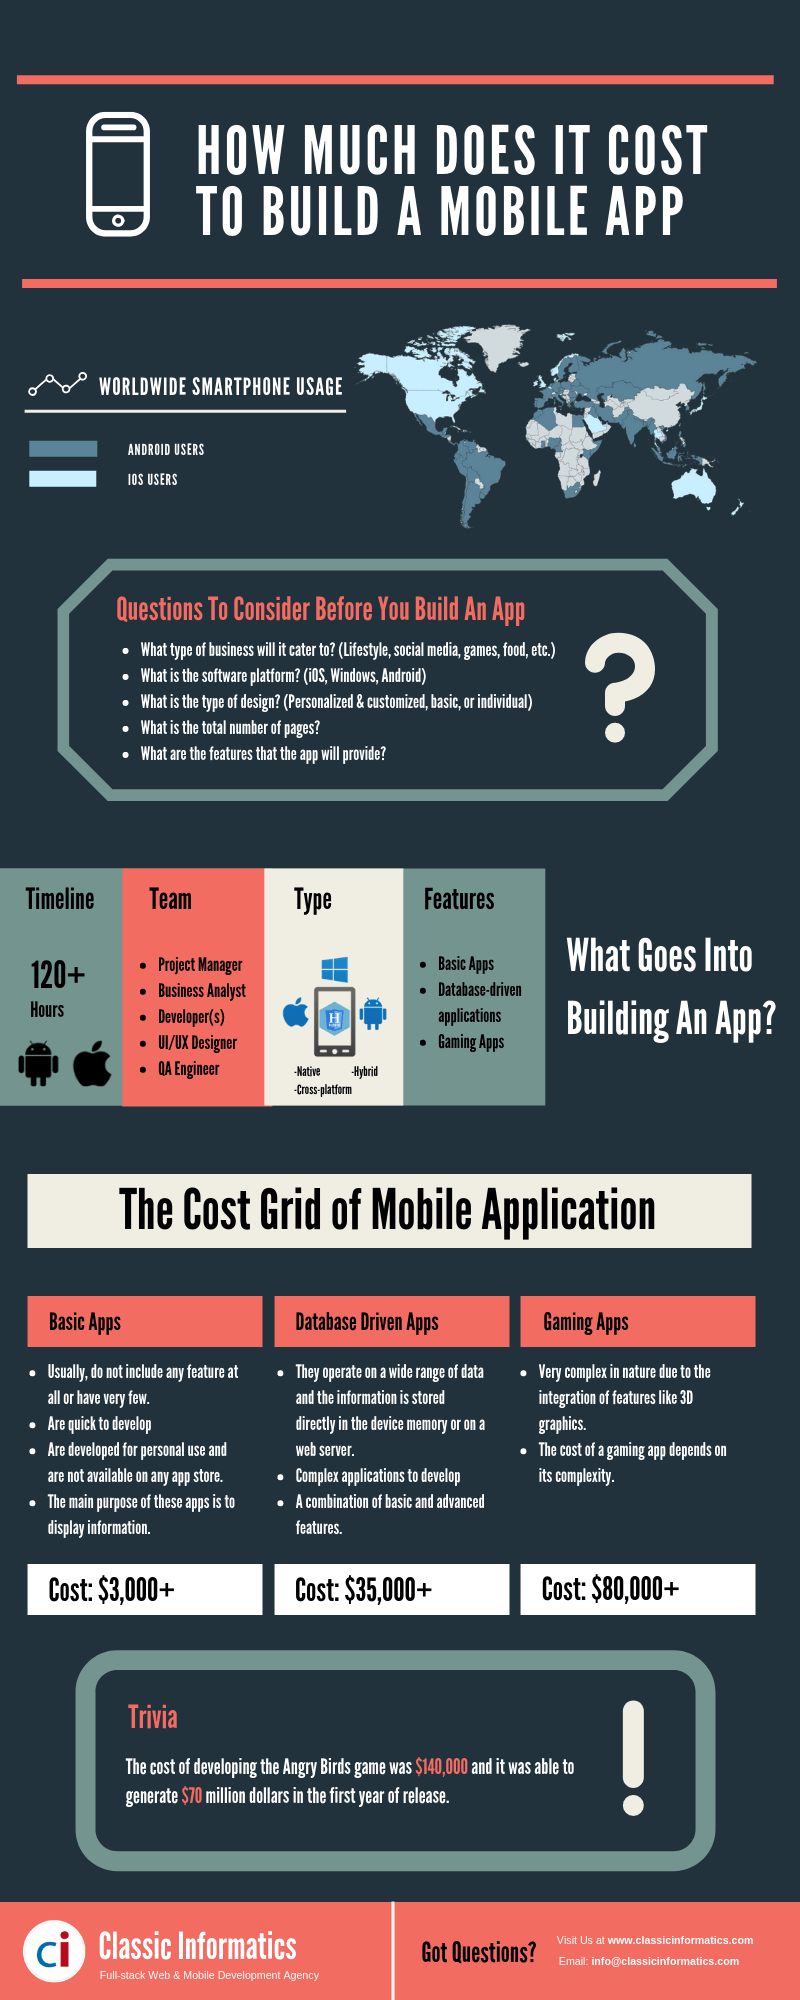 The Real Cost Of Developing a Mobile App in 2019 Infographic_Classic Informatics